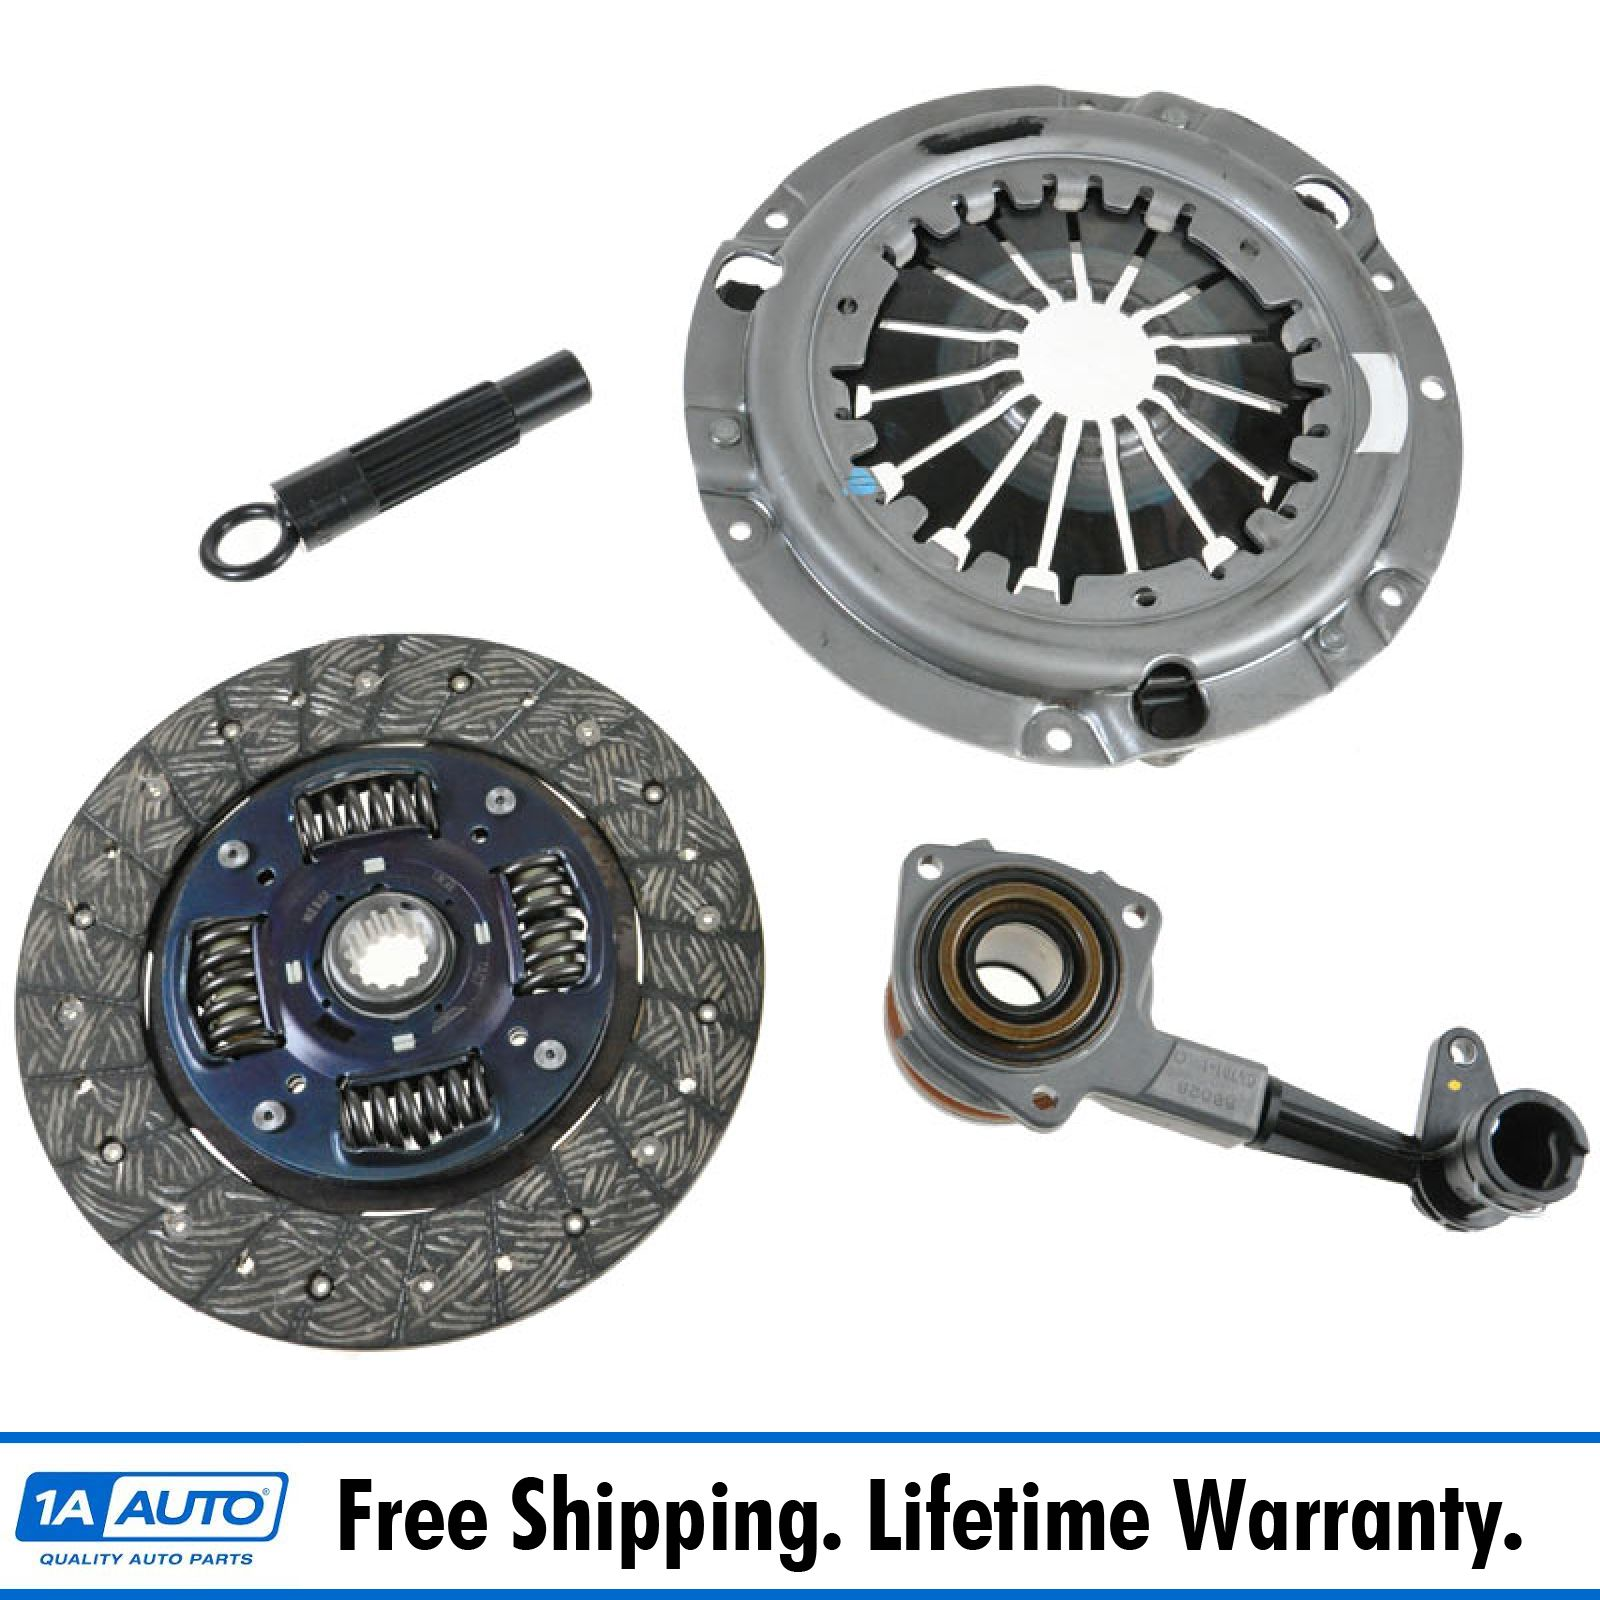 Details about Pressure Plate Clutch Kit Set EXEDY GMK1010 for Chevy Cobalt  Pontiac G5